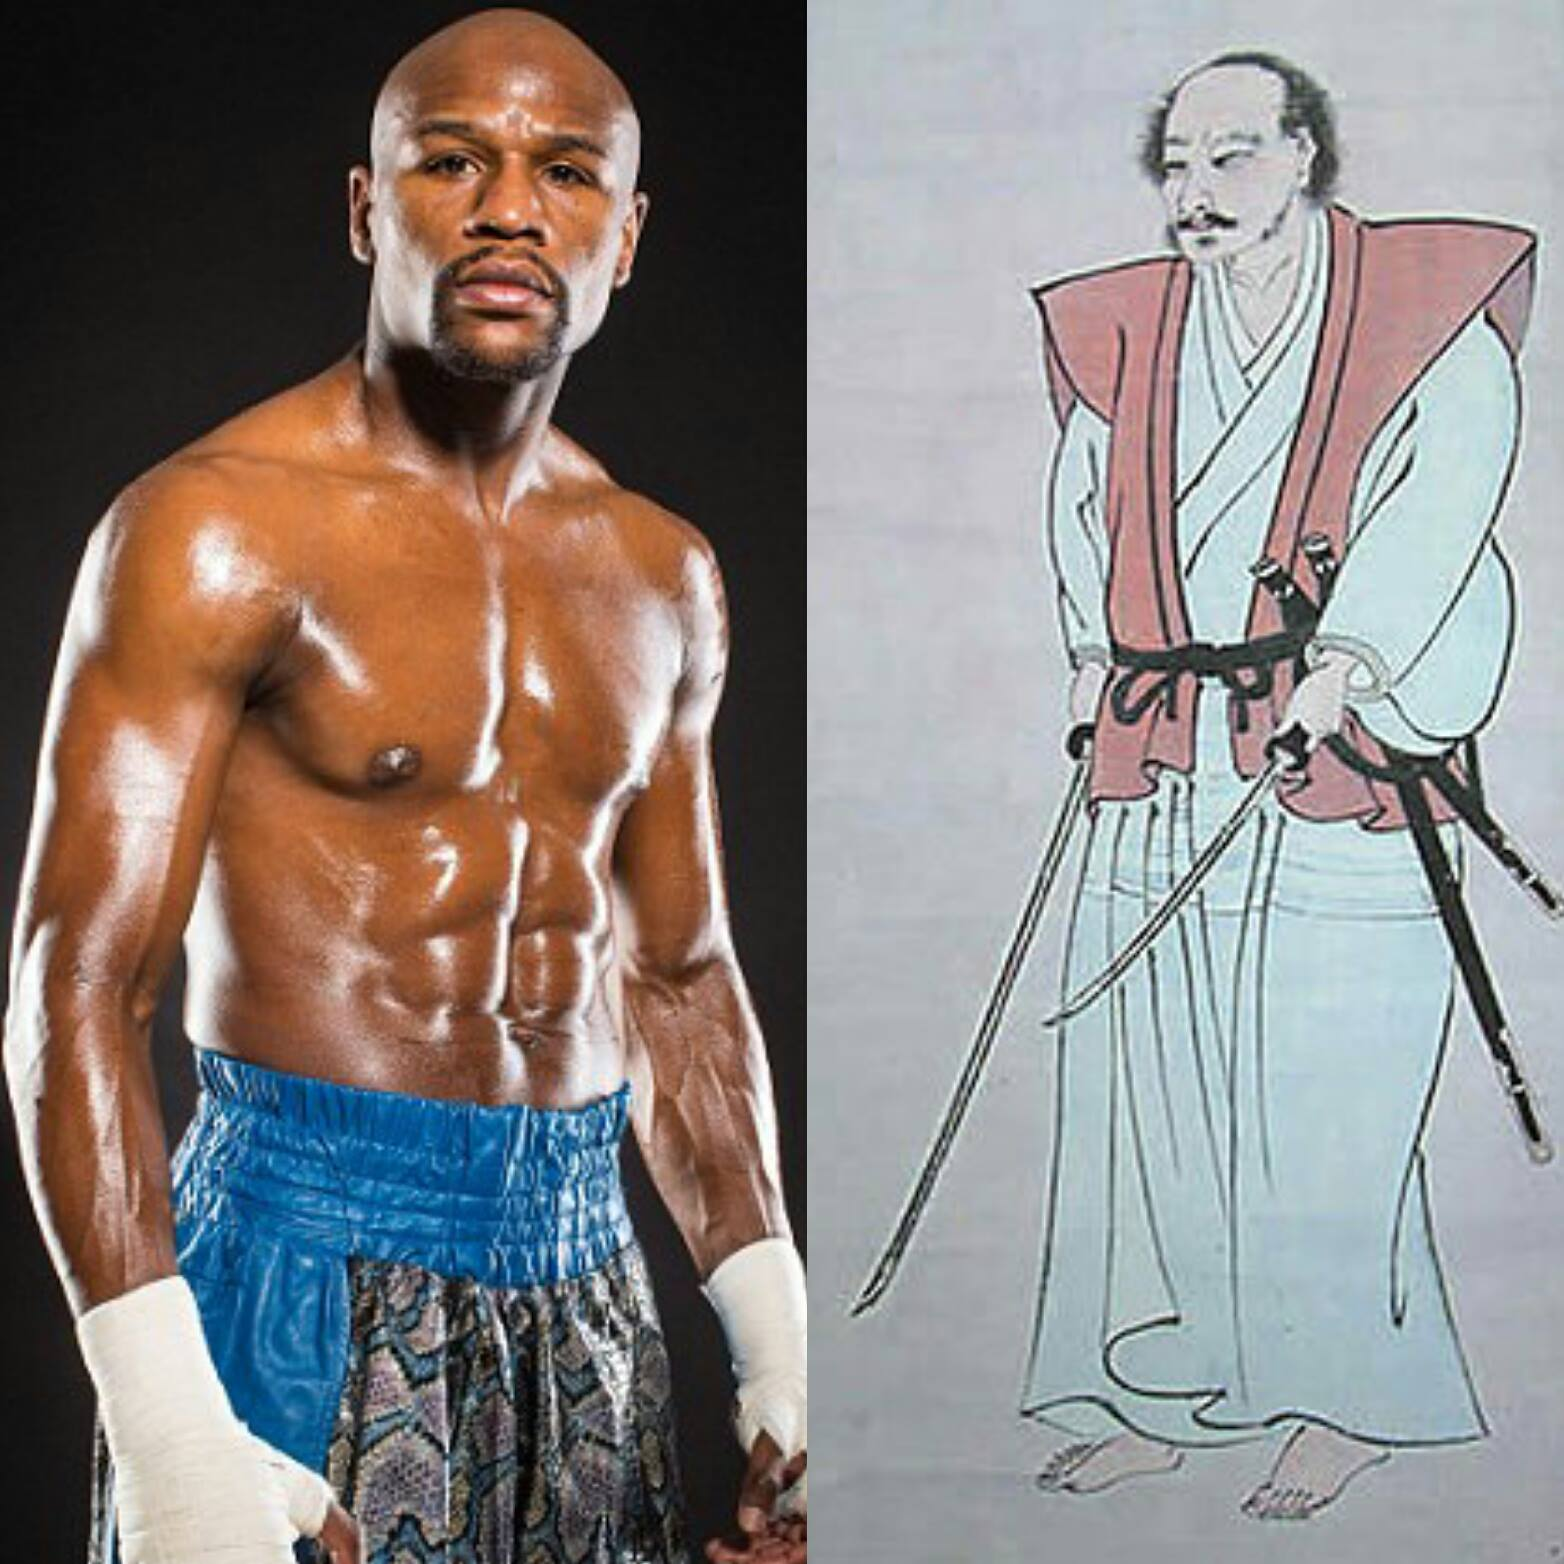 (All credit to  Daily Mail  for Floyd Mayweather picture and  historyoffighting.com  for the Musashi picture.)  Floyd may have had faster hands and nicer shorts, but in terms of accomplishments, 49-0 in boxing isn't even on the same planet as being 60-0 in fucking sword fights.